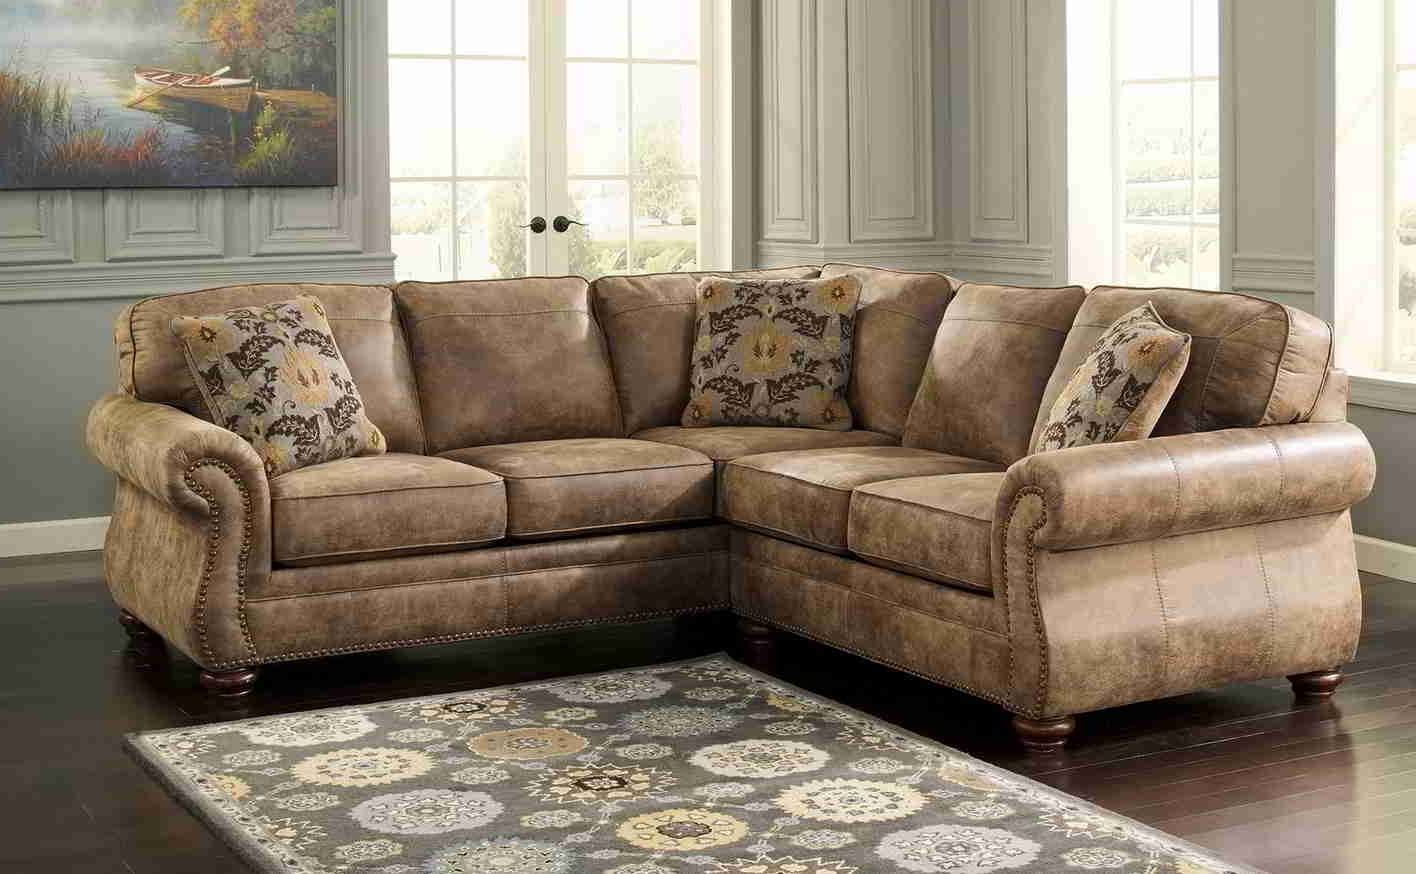 Best Wide Seat Sectional Sofas 95 About Remodel High Back Within Popular Sectional Sofas With High Backs (View 3 of 15)